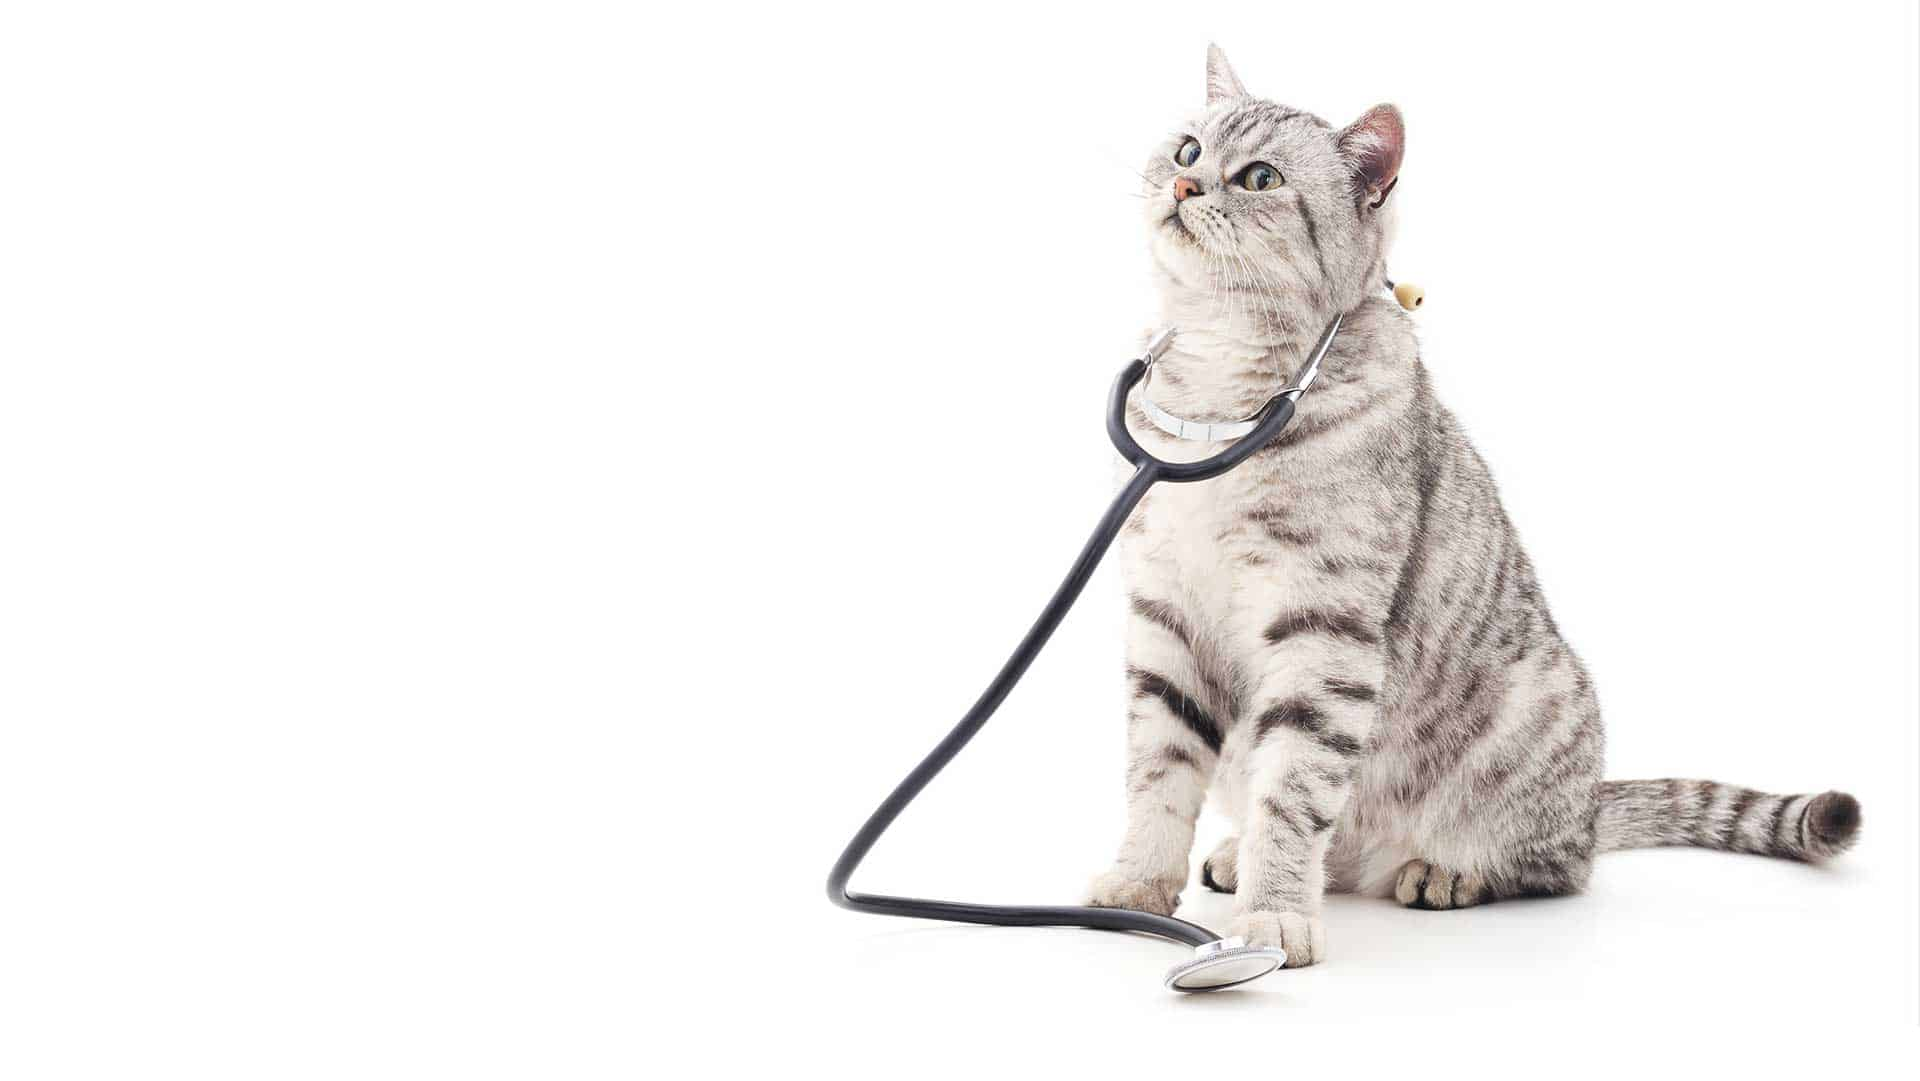 A white tabby cat wearing a veterinary stethoscope around her neck.